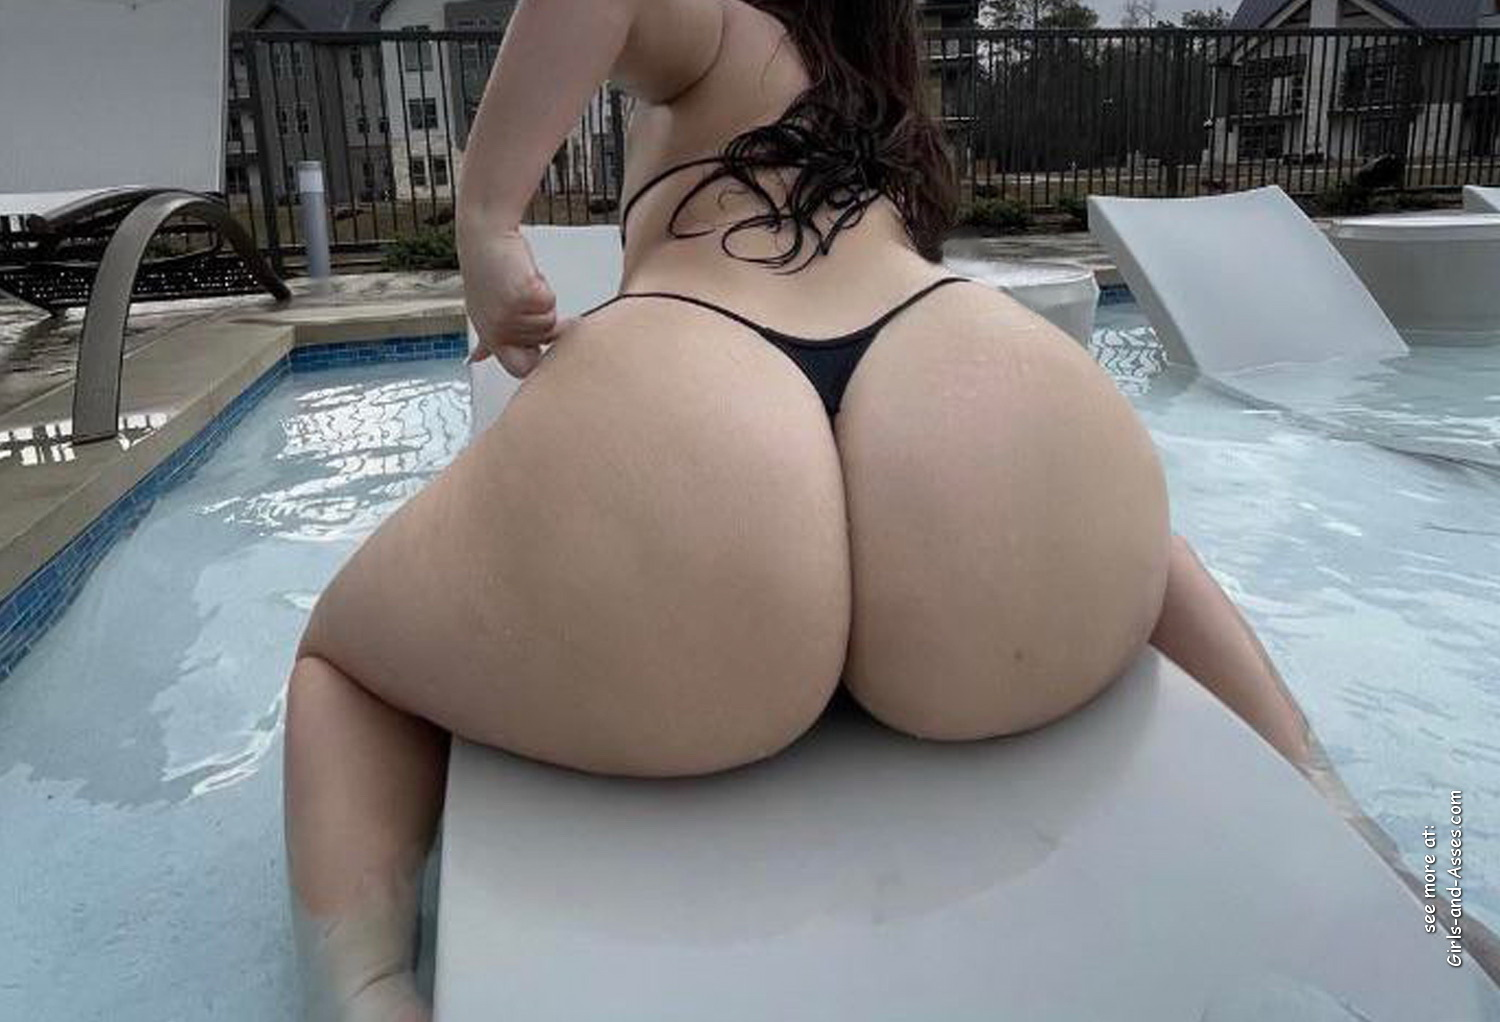 big thick naked booty at the pool picture 02127